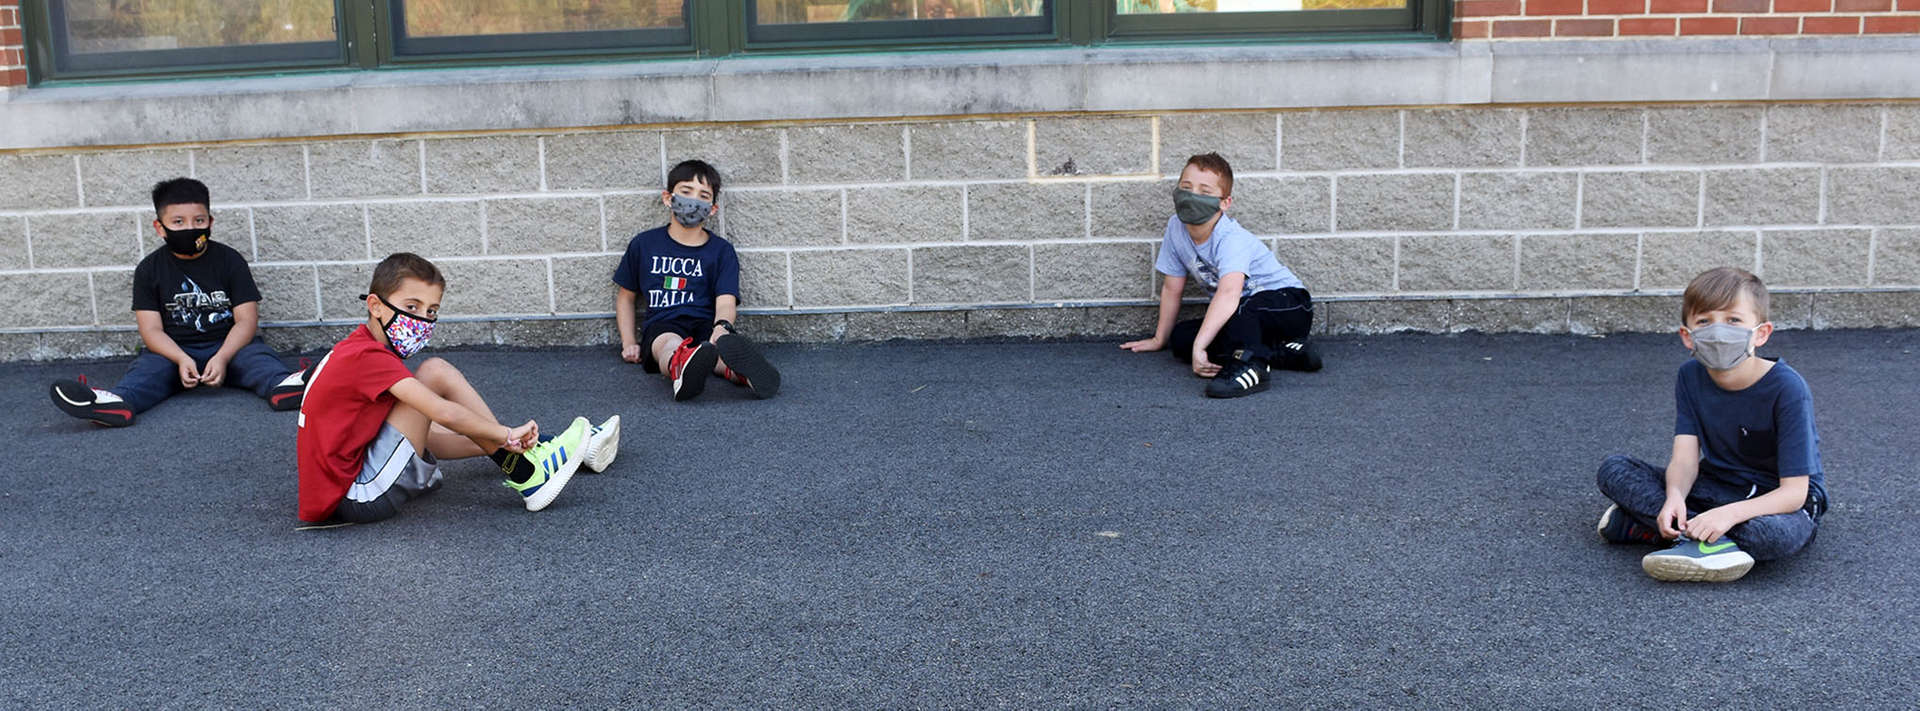 boys sit separate from each other at recess